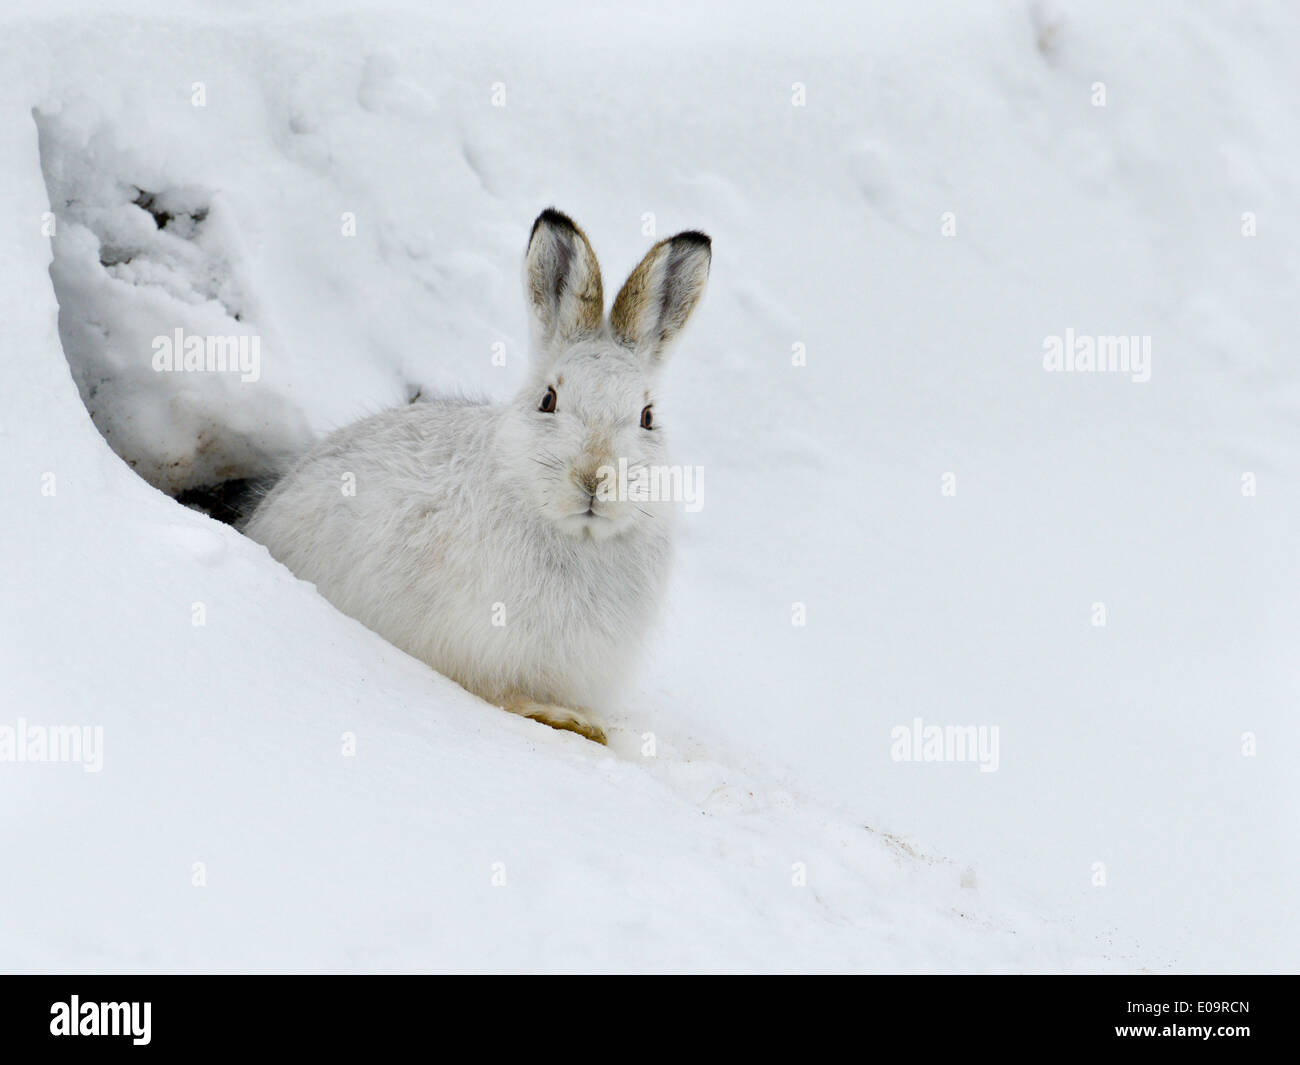 mountain-hare-lepus-timidus-cairngorms-scotland-taking-shelter-from-E09RCN.jpg